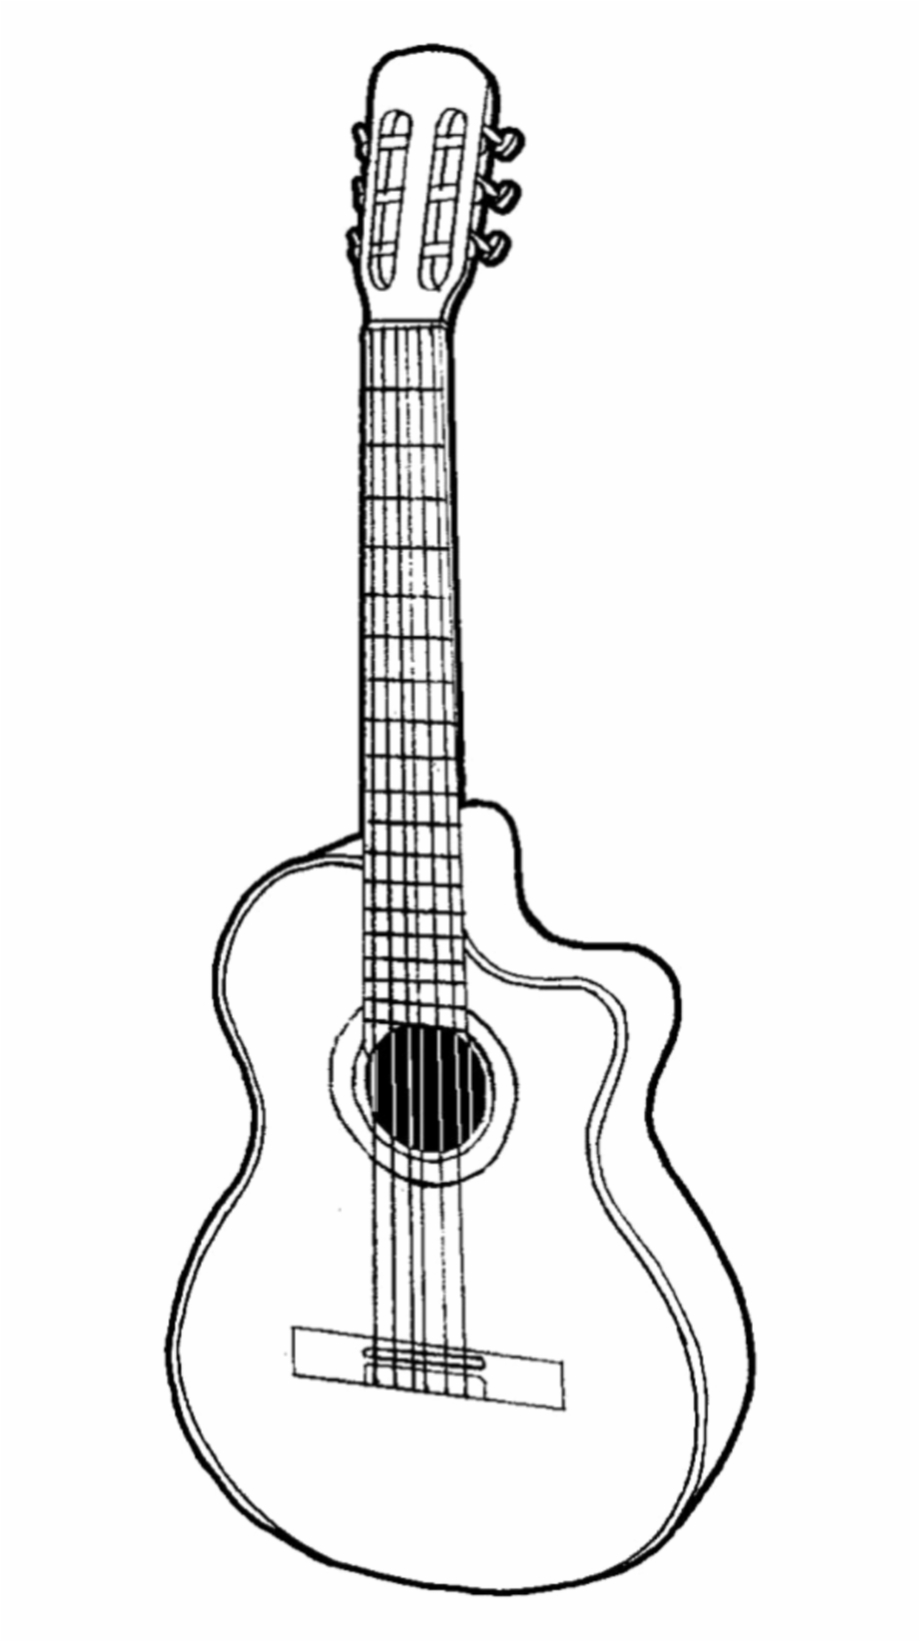 guitar #draw #drawing #scrapbook #scrapbooking #design.